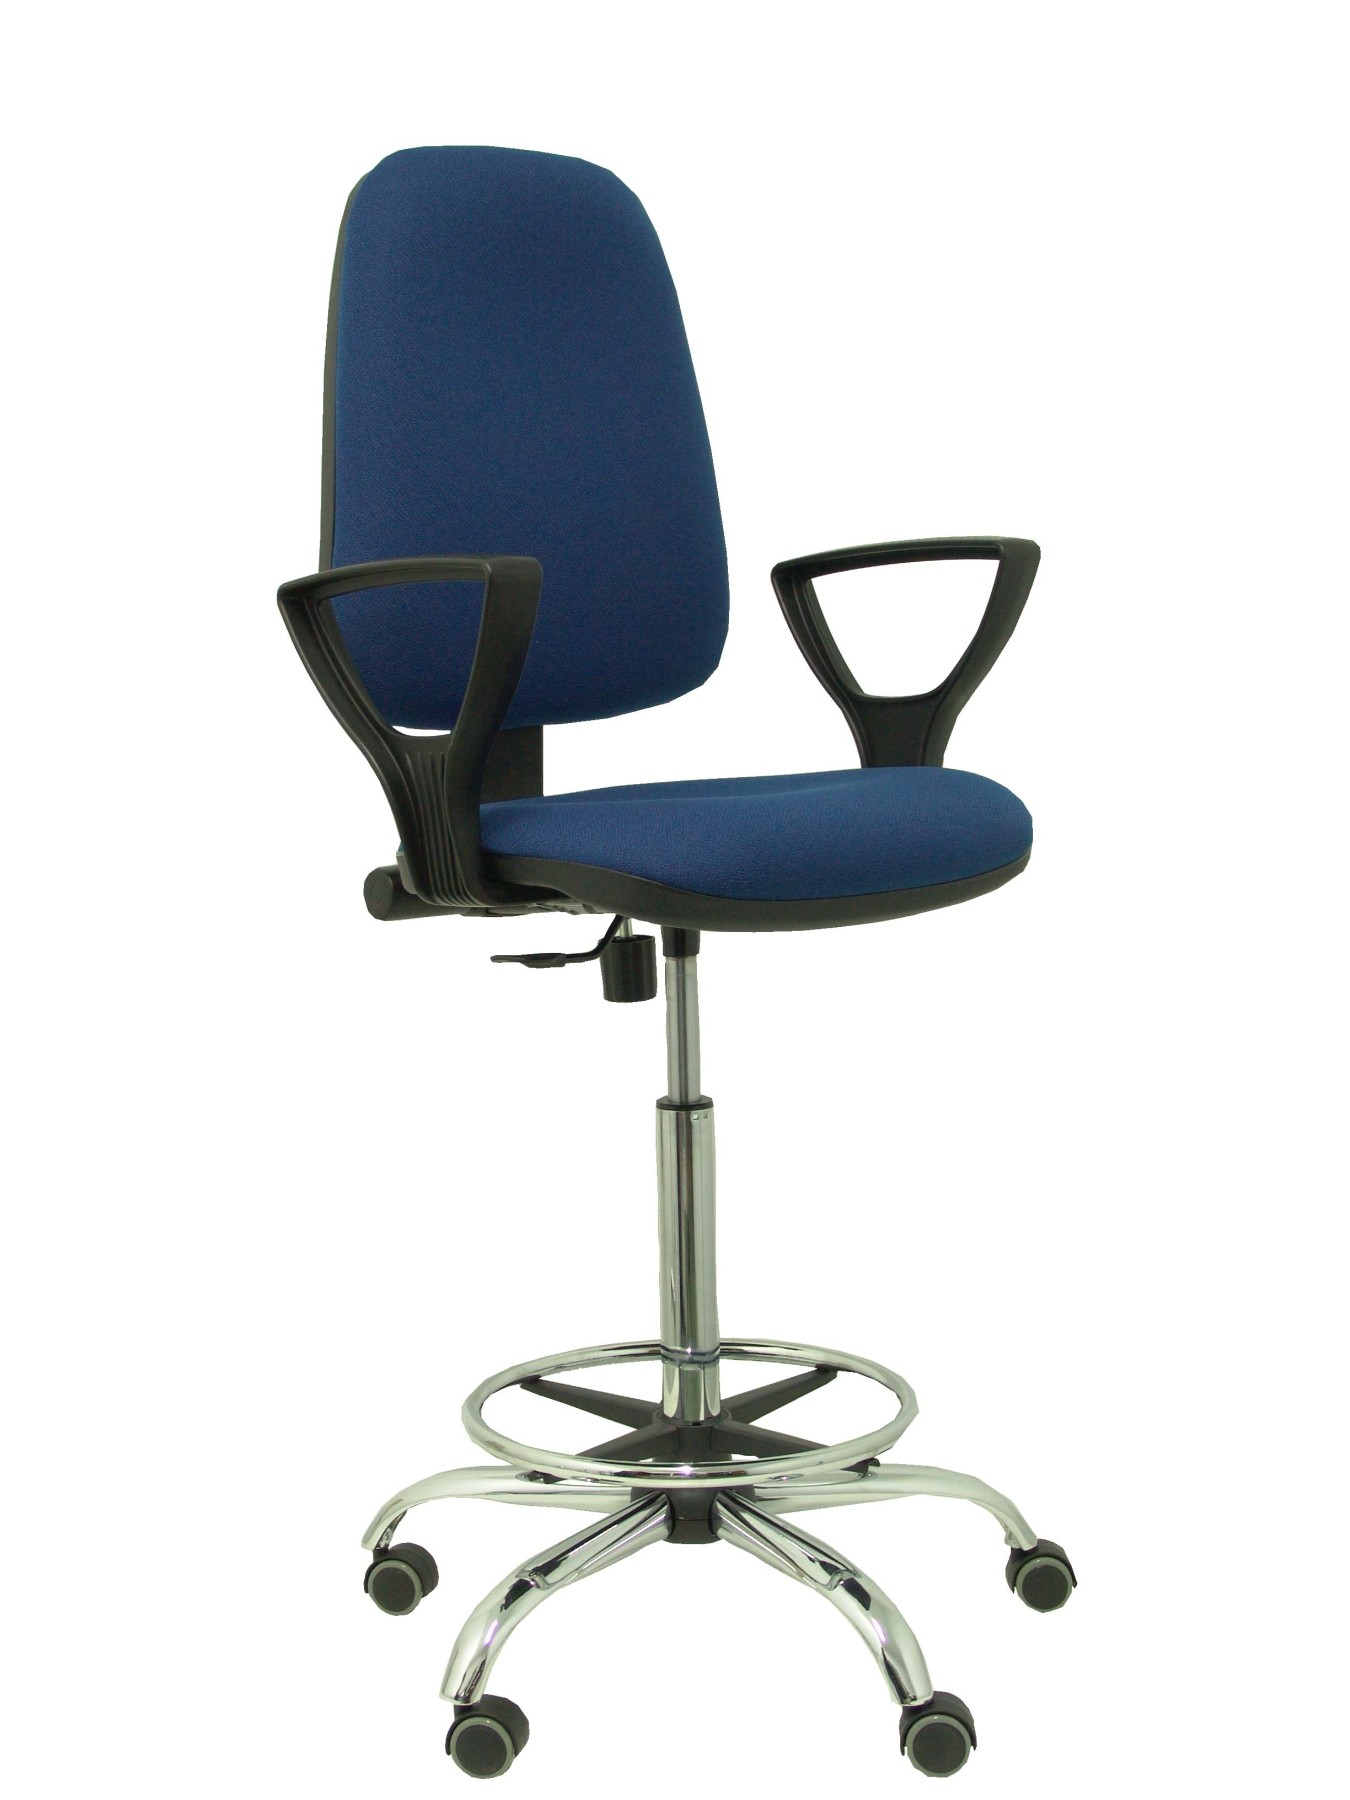 Ergonomic Stool With Mechanism Permanent Contact And Adjustable Seat Height-Seat And Back Upholstered In